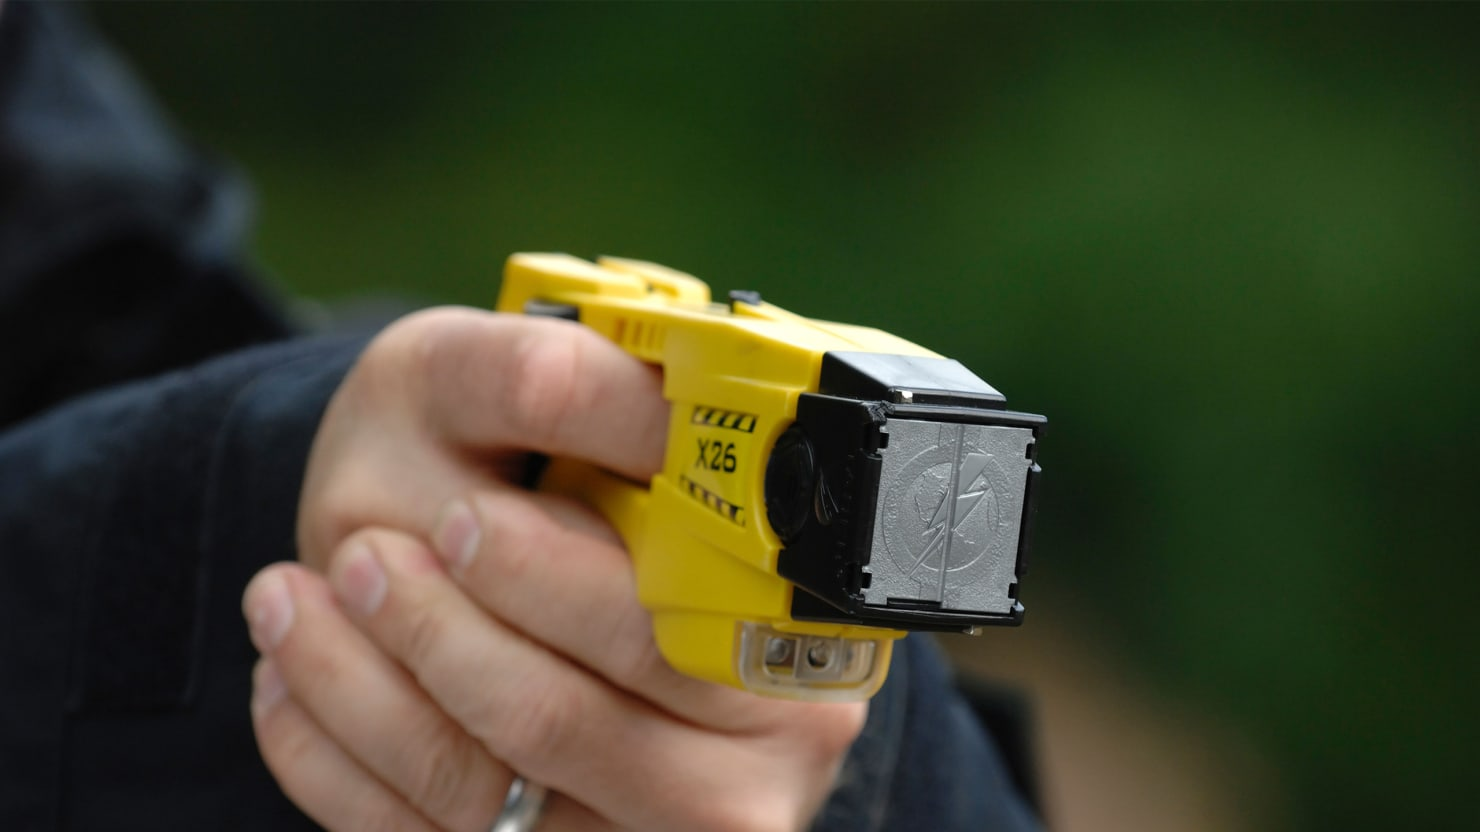 When Police Tasers Kill: The Tragic Death of Stanley Harlan